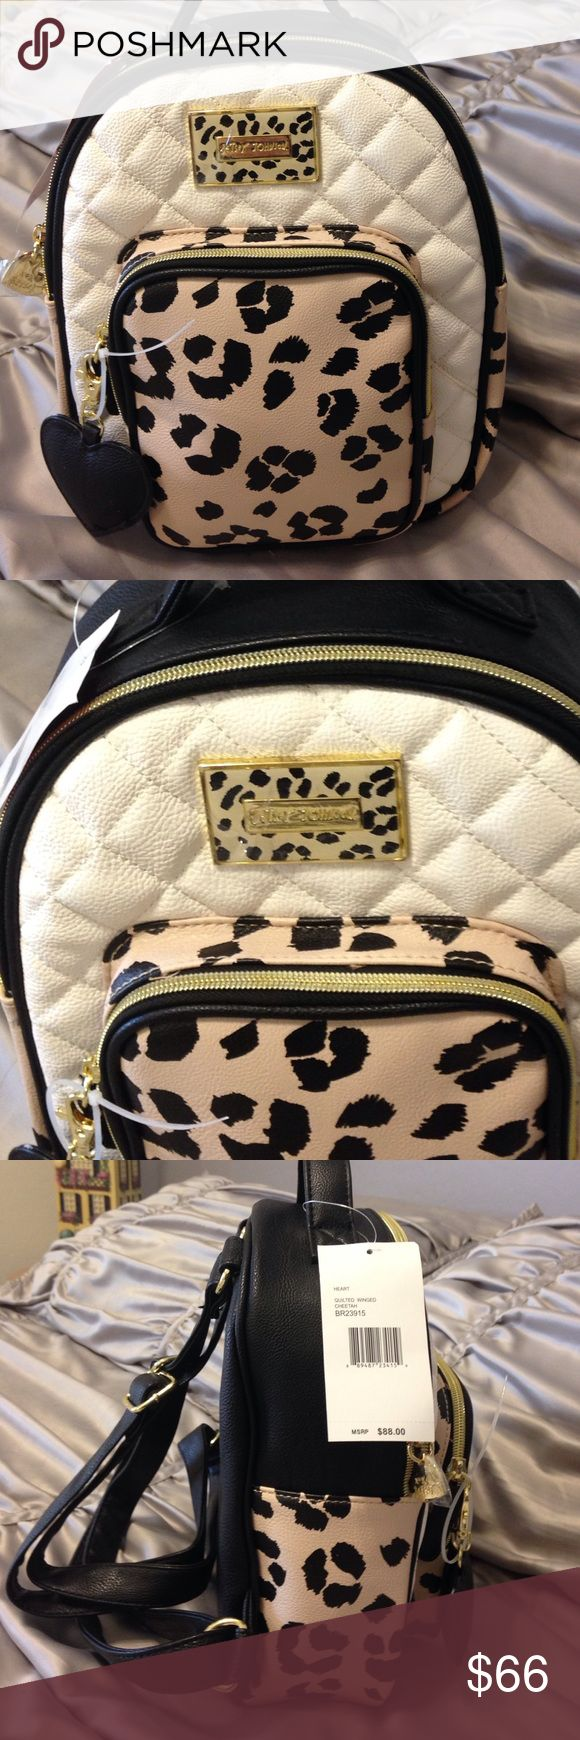 NEW -  Betsey Johnson Animal Print Backpack NEW -  Betsey Johnson Animal Print Backpack. This is super cute cream, black and tan. Gorgeous floral lining in this one! How can you not love Betsey? Bag measures 9 inches across, 11 inches high and 4 inches wide not counting additional front pocket. Betsey Johnson Bags Backpacks